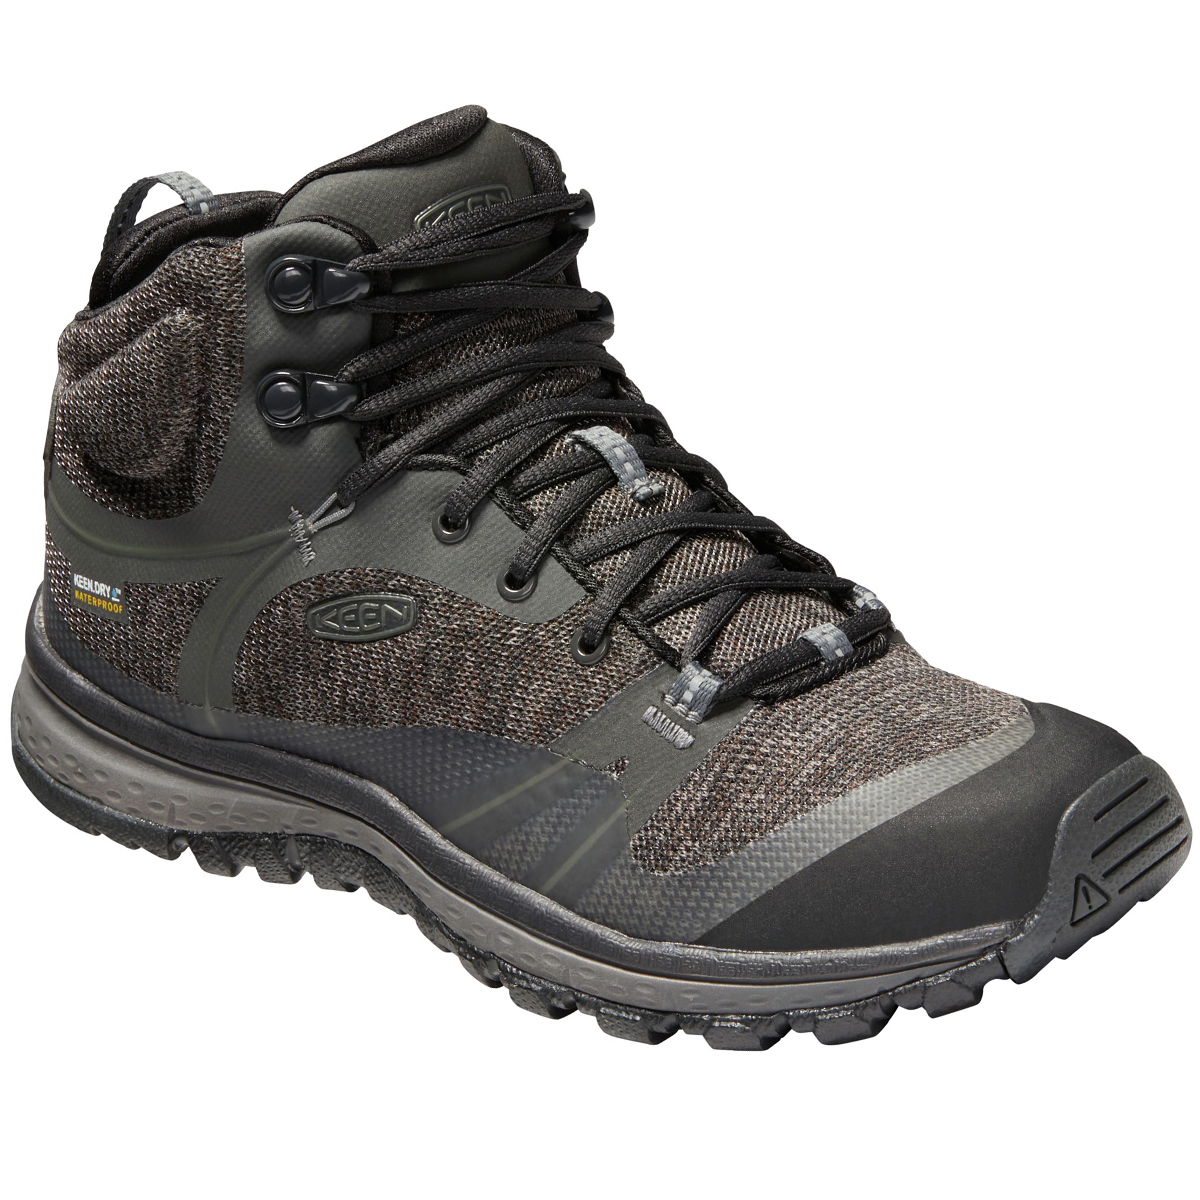 Keen Women's Terradora Mid Waterproof Hiking Shoes - Black, 9.5